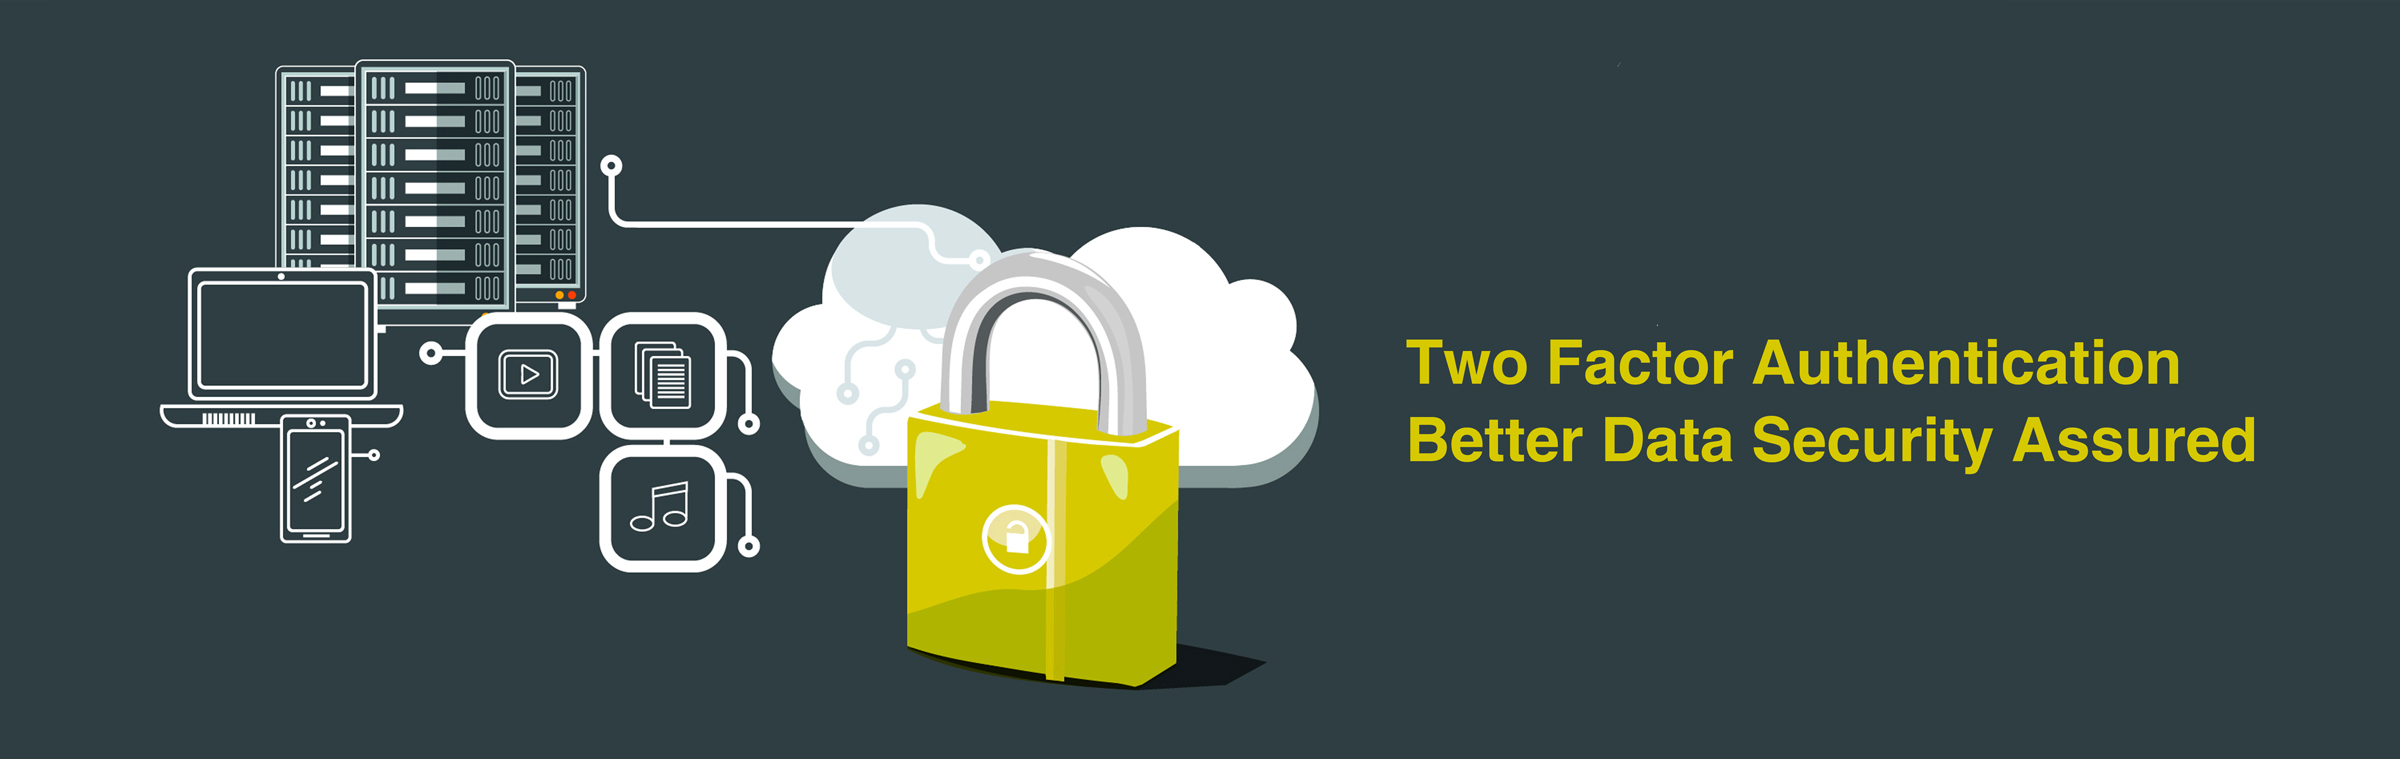 Two Factor Authentication: Better Account Security Assured